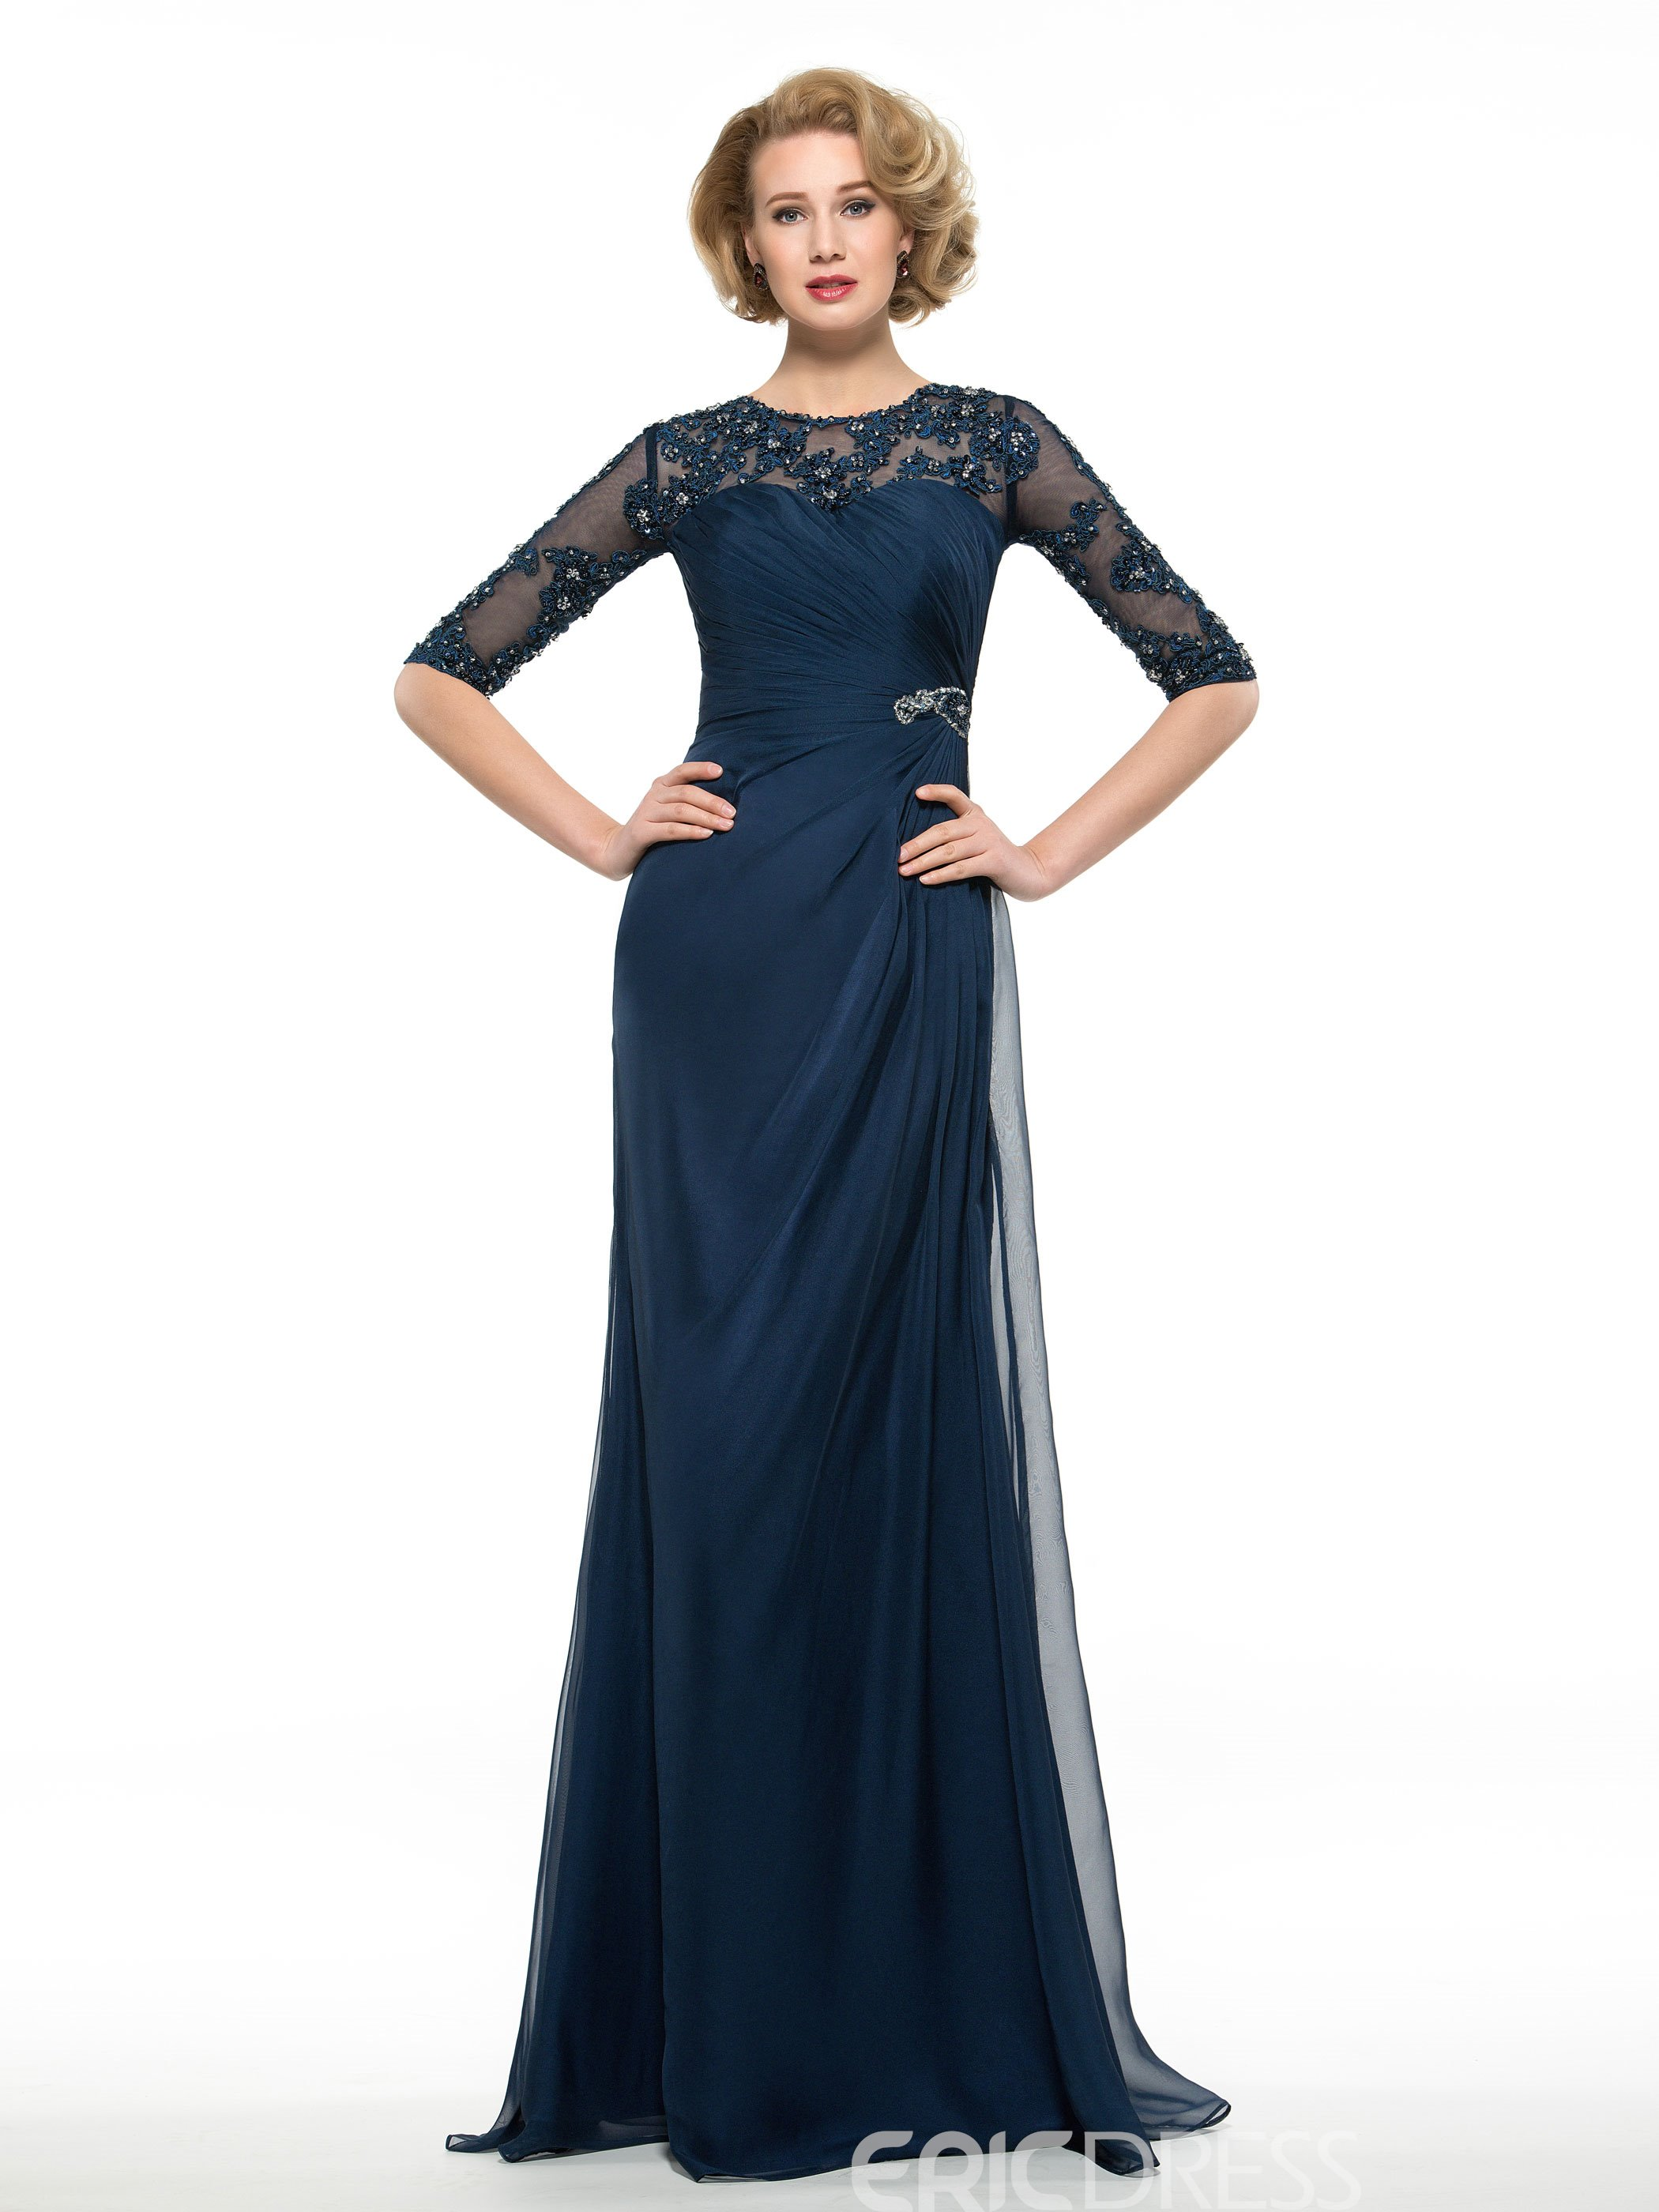 db3d5f4dafa2 Ericdress Half Sleeves A Line Long Appliques Mother Of The Bride Dress